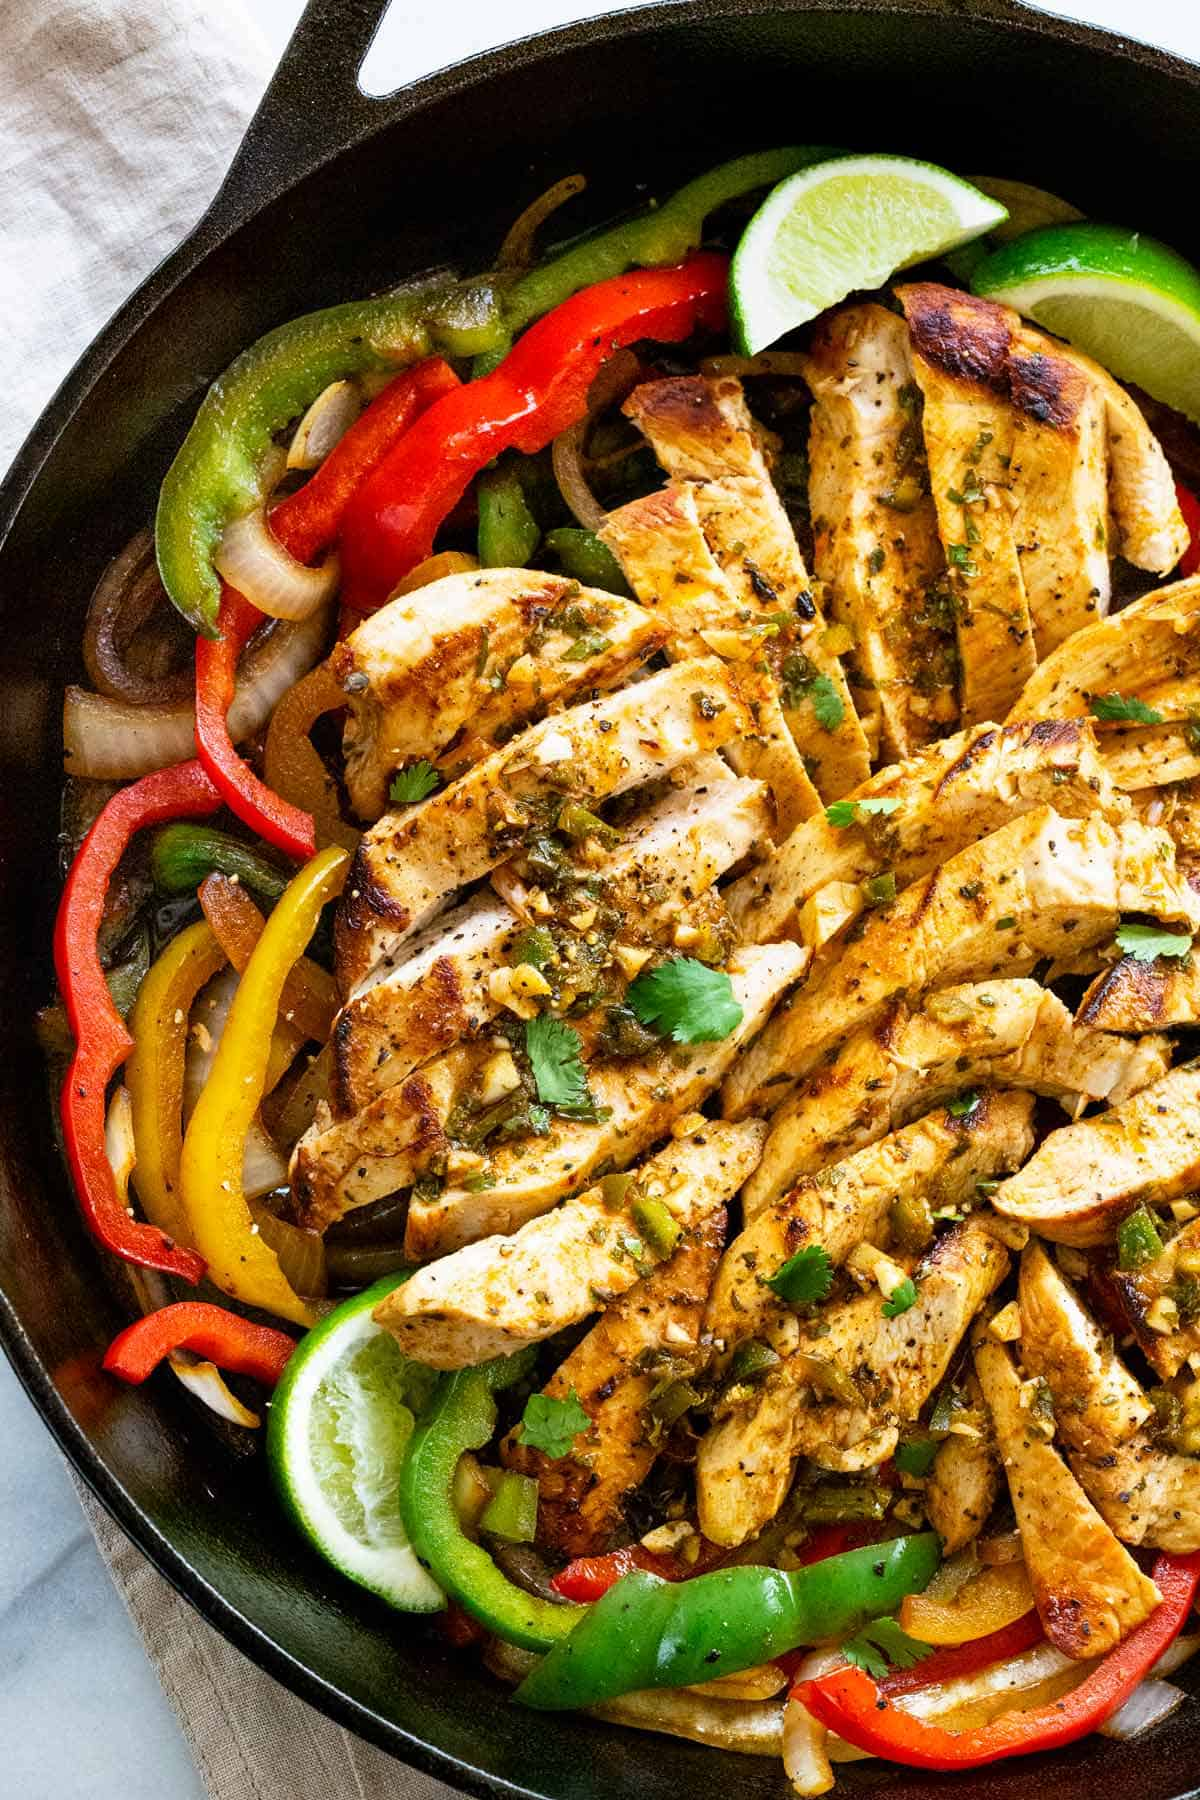 Easy chicken fajitas recipe with lean white meat infused with a cilantro lime marinade that\'s sauteed with crunchy bell peppers, and onions. #chickenfajitas #chickentacos #fajitas #mexicancuisine